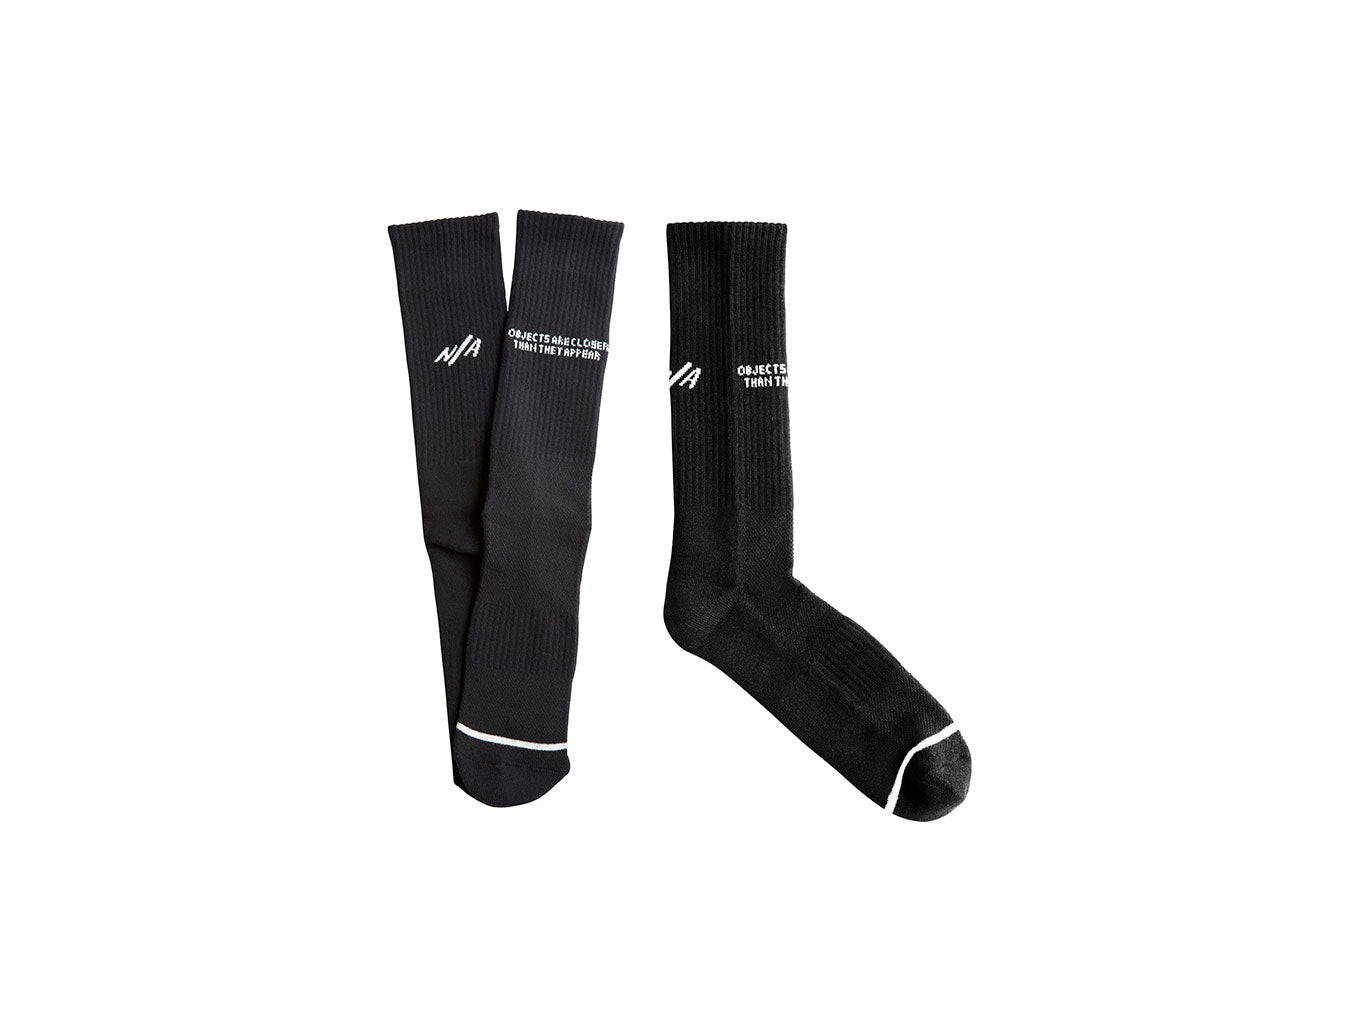 FORTYSEVEN <br> BLK <br> MID-CALF ATHLETIC